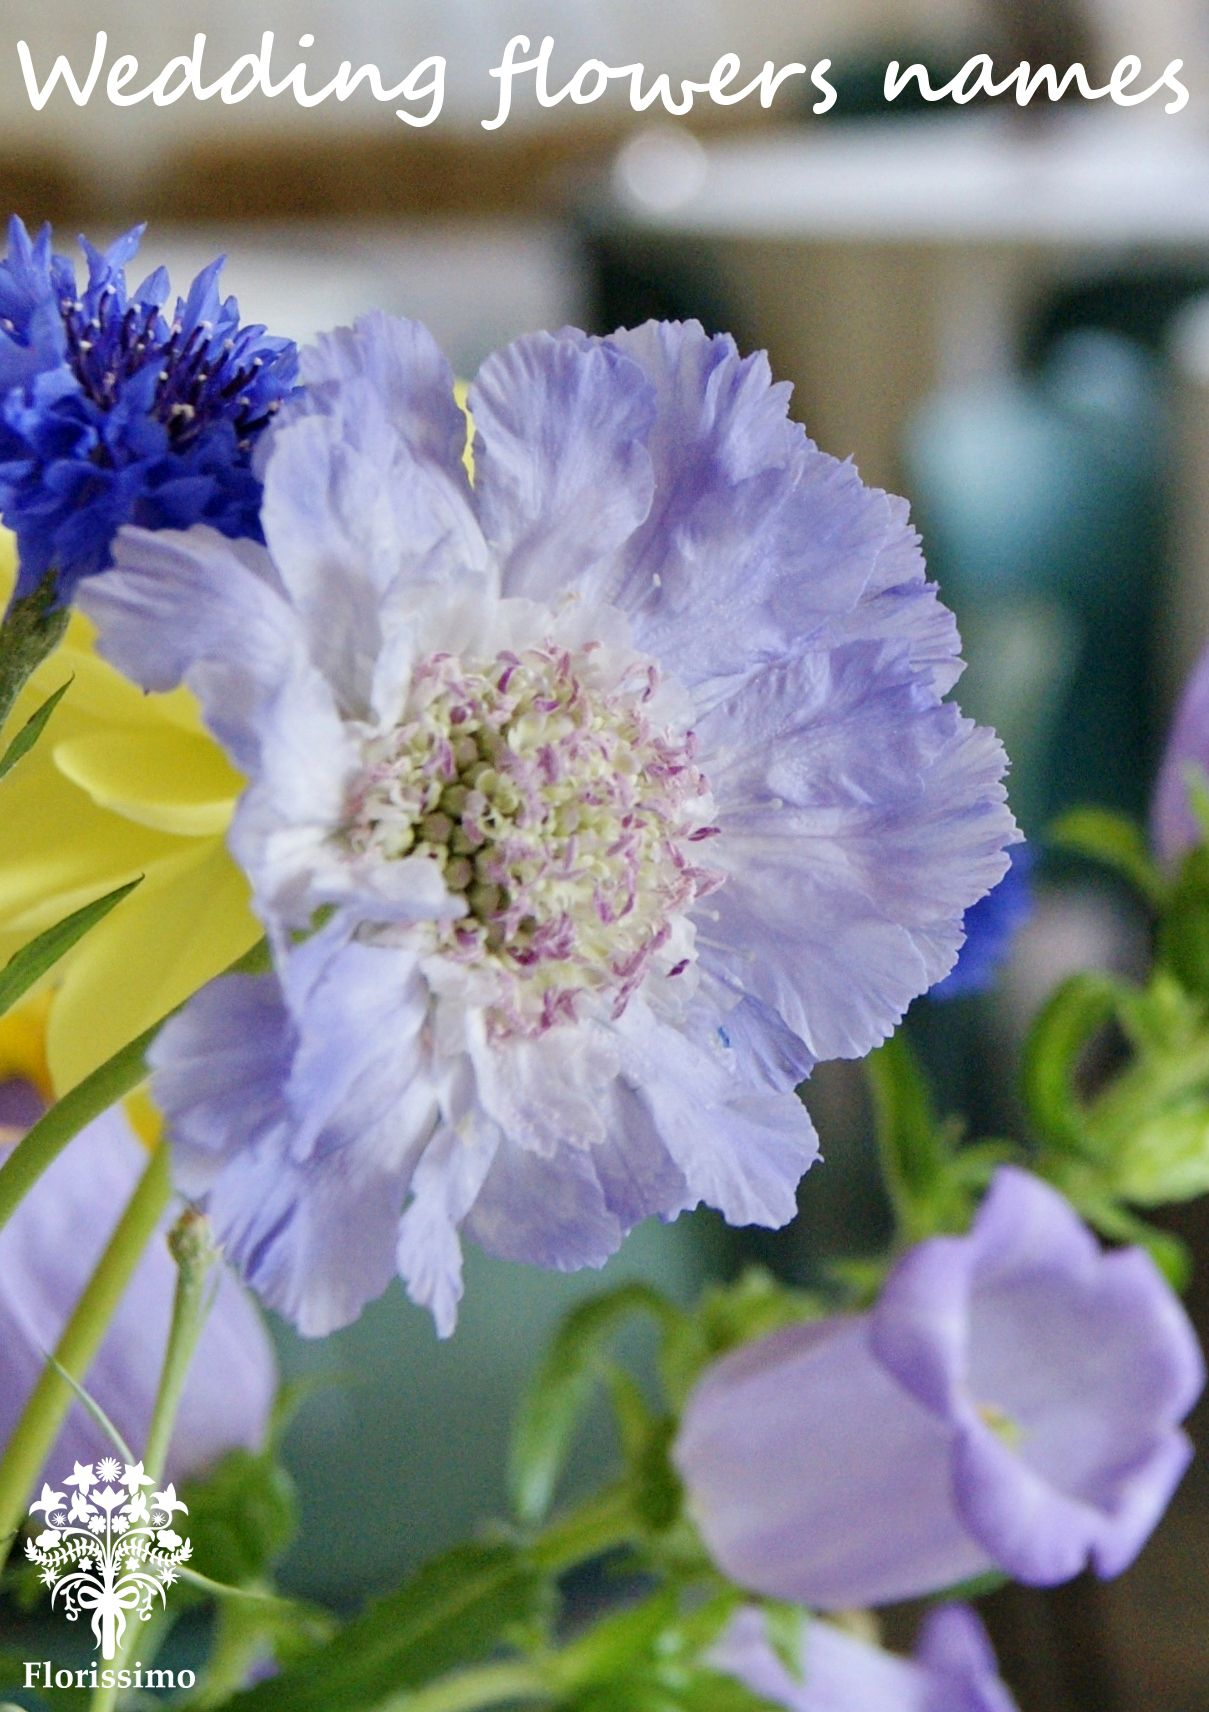 Scabious Florissimo Shropshire Find Flower Names In The